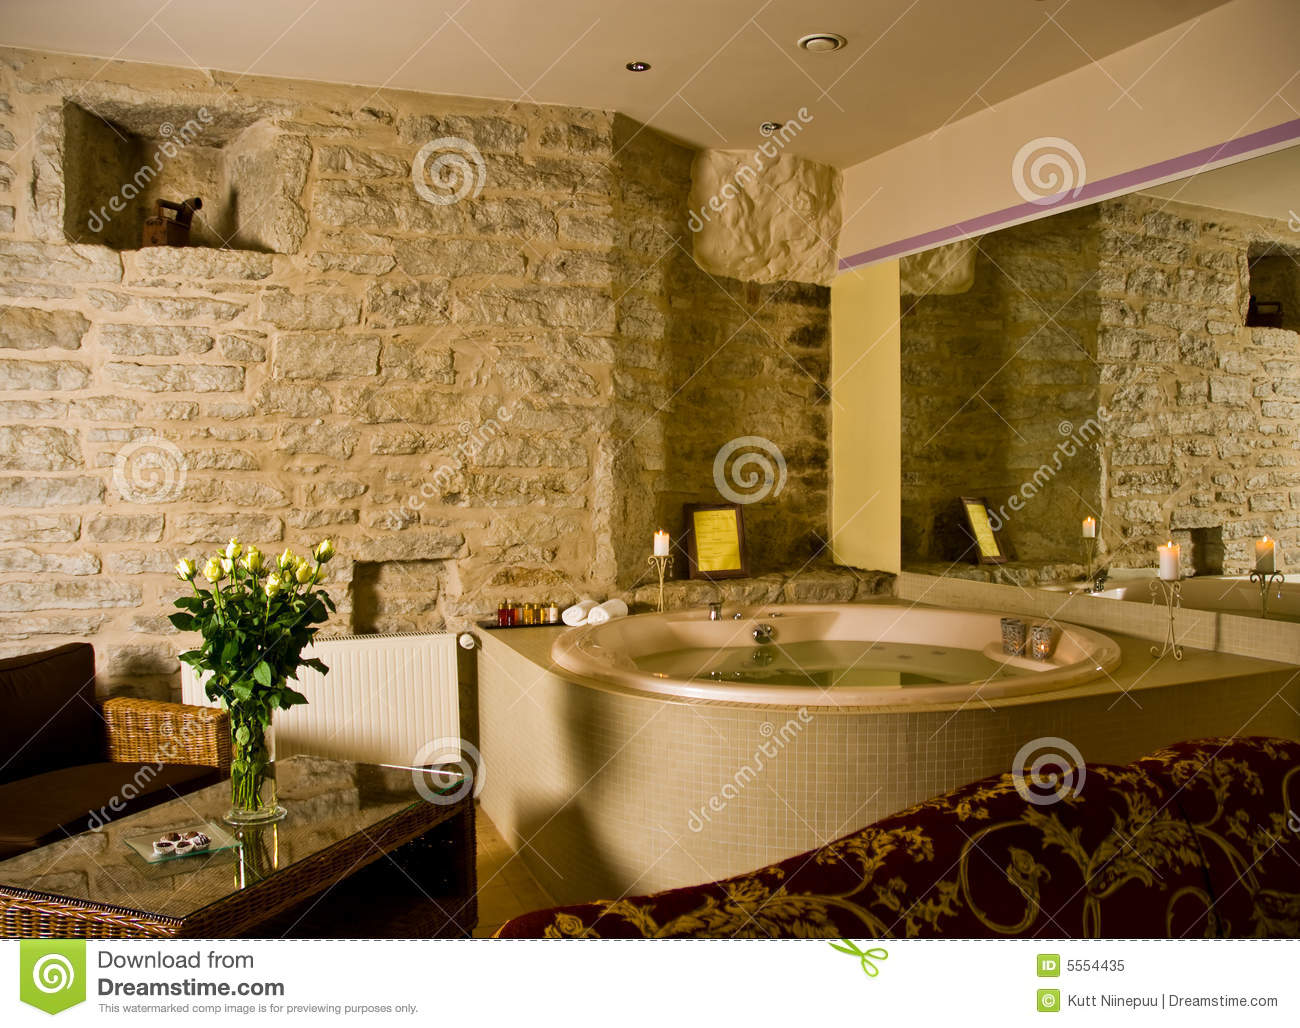 Jacuzzi In Slaapkamer Hotel : Hotels with Jacuzzi Inside Room